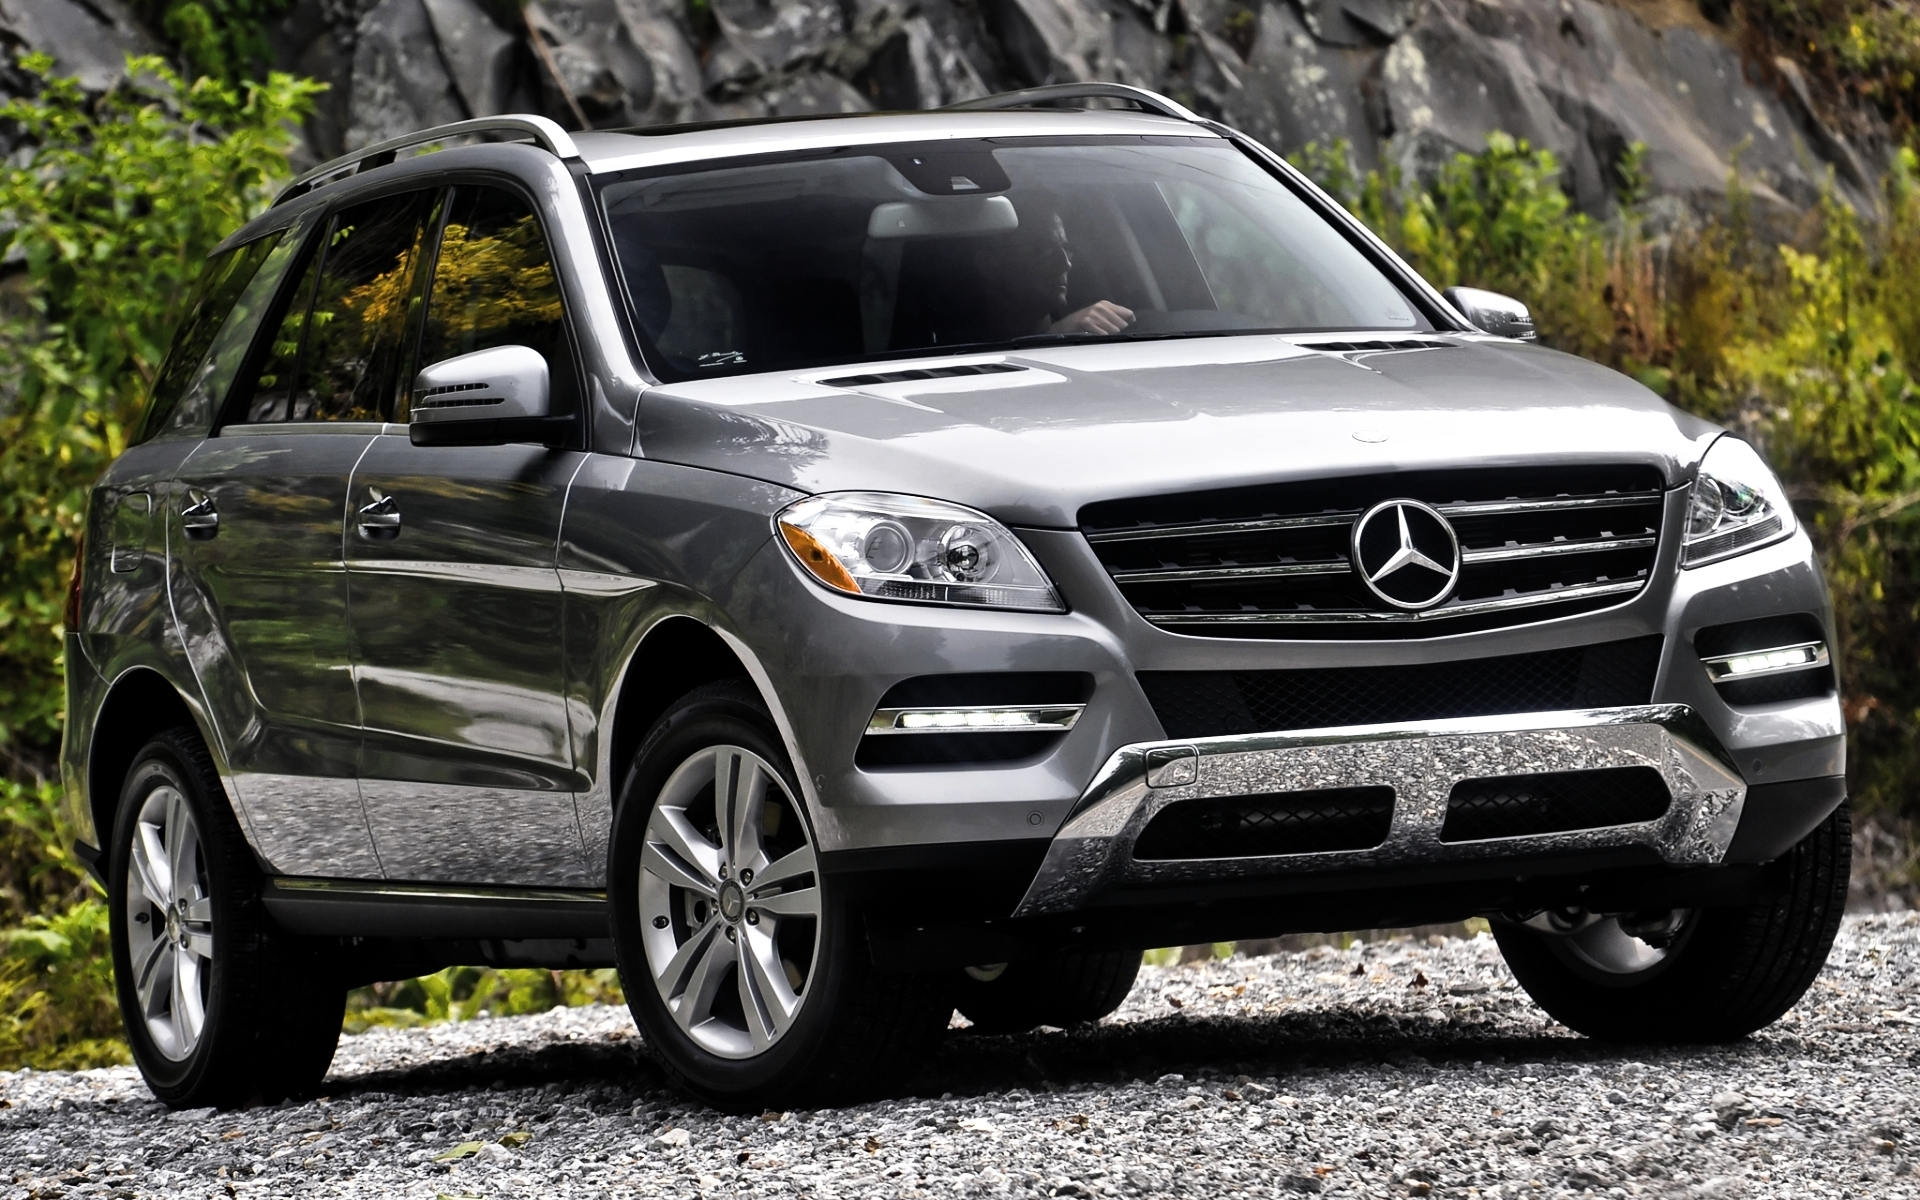 Hd desktop wallpaper of mercedes benz ml 350 desktop for Mercedes benz 350 ml